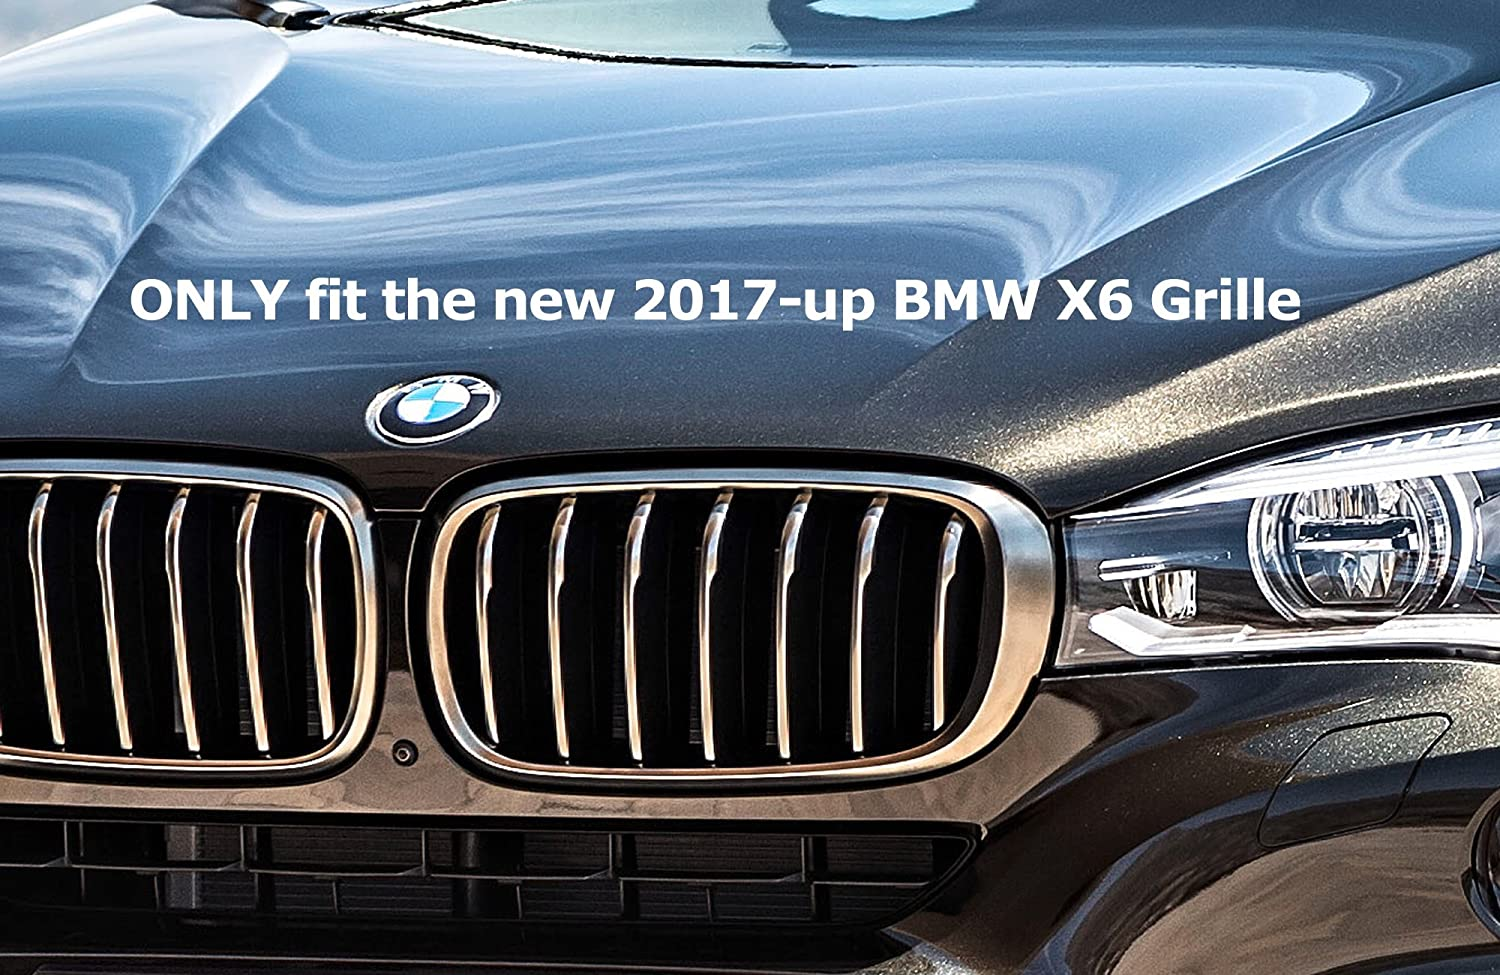 8 Beams iJDMTOY Exact Fit //////M-Colored Grille Insert Trims For BMW F30 F31 3 Series 320i 328i 330i 335i 340i M-Performance Black Kidney Grilles Not For The 11-Beam Standard Grille nor 4 Series